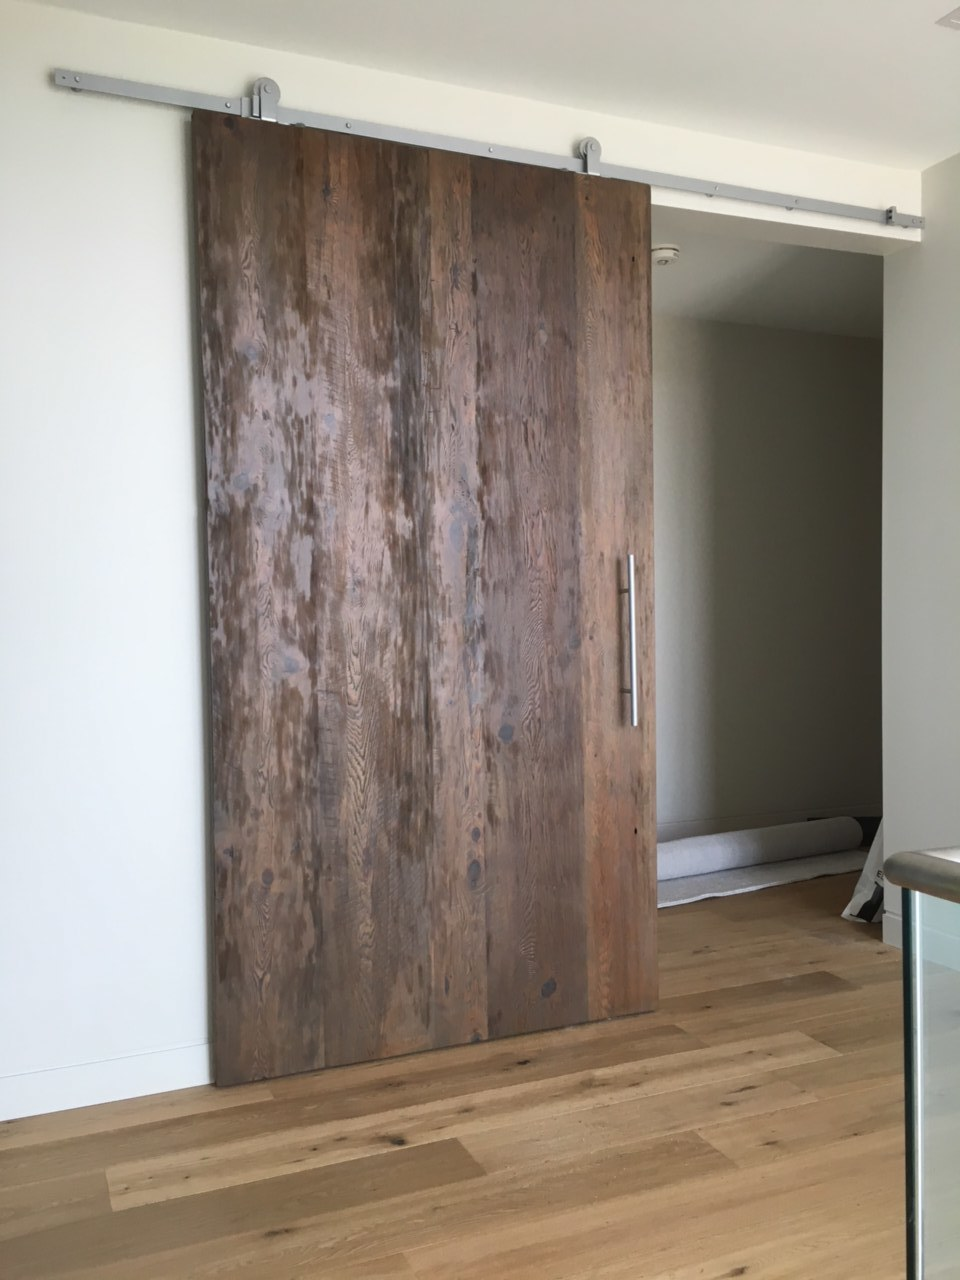 Reclaimed Wood Sliding Door with Chrome Hardware